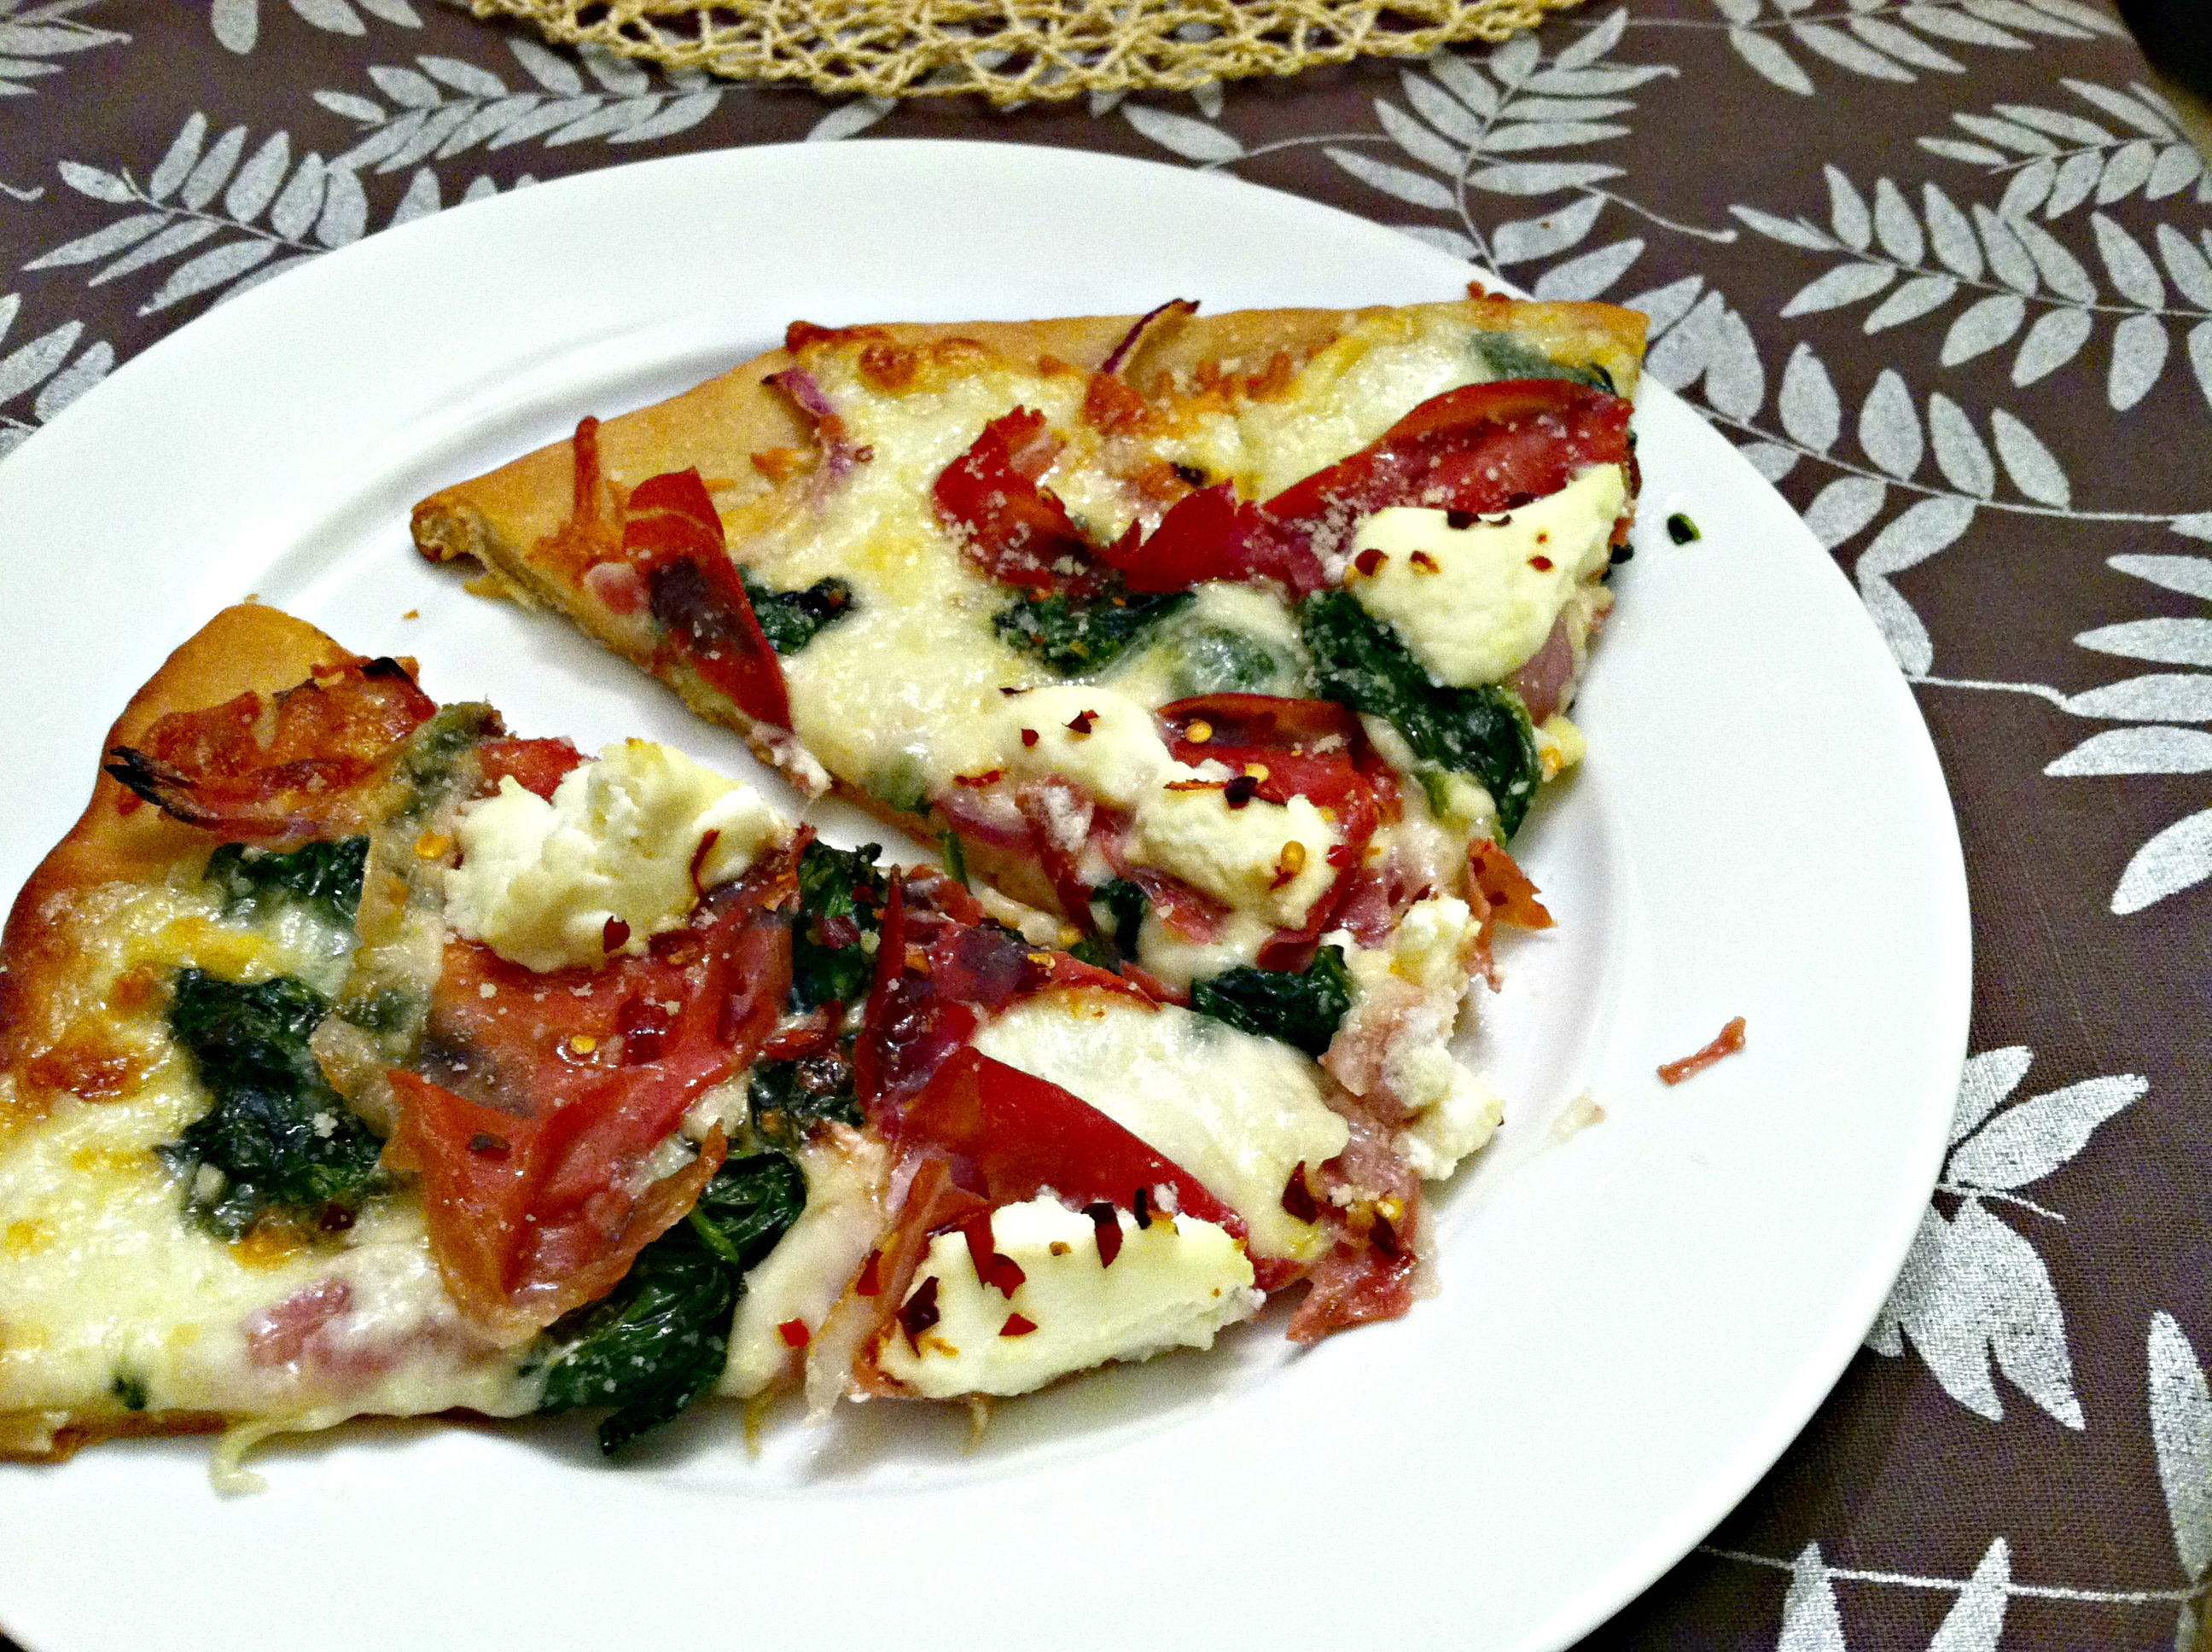 ... pizza dough and topped it with sauteed spinach, prosciutto, ricotta